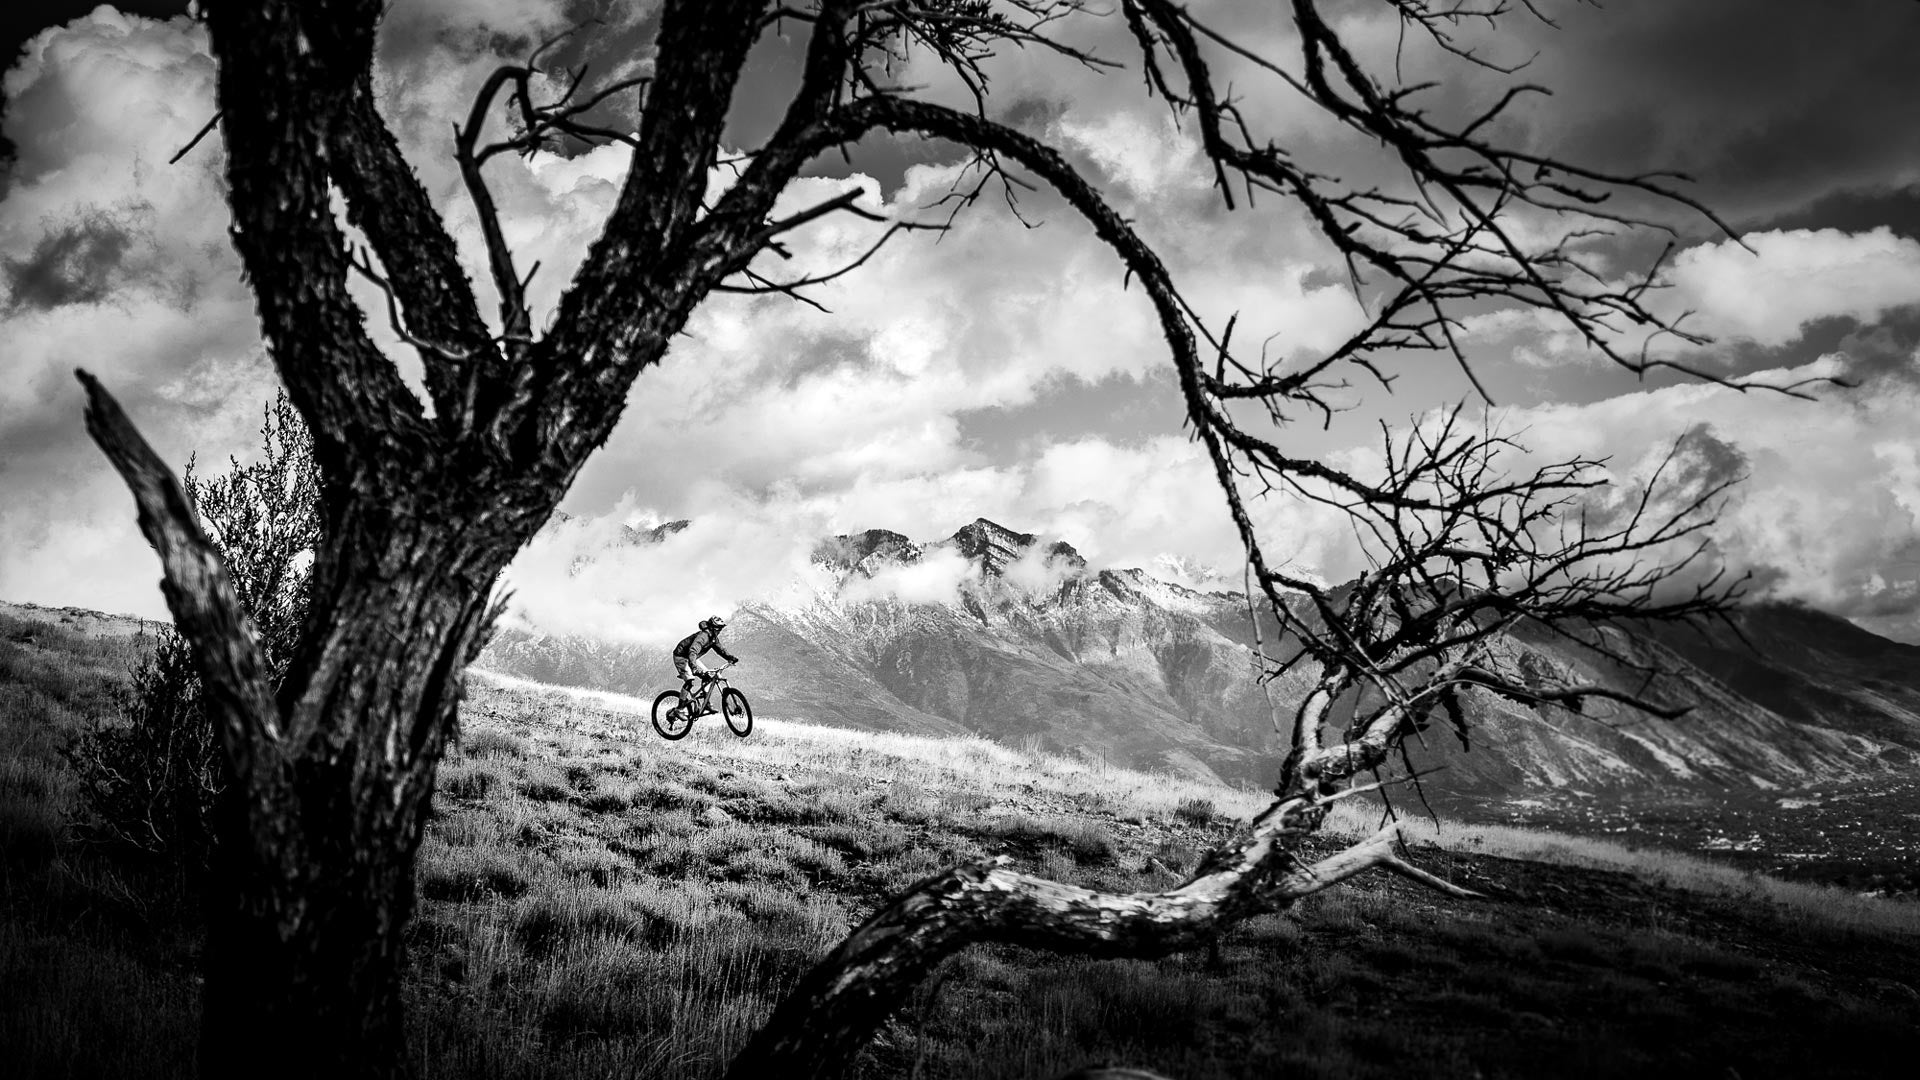 How to take great mountain bike photos - Step six: Change your perspective.